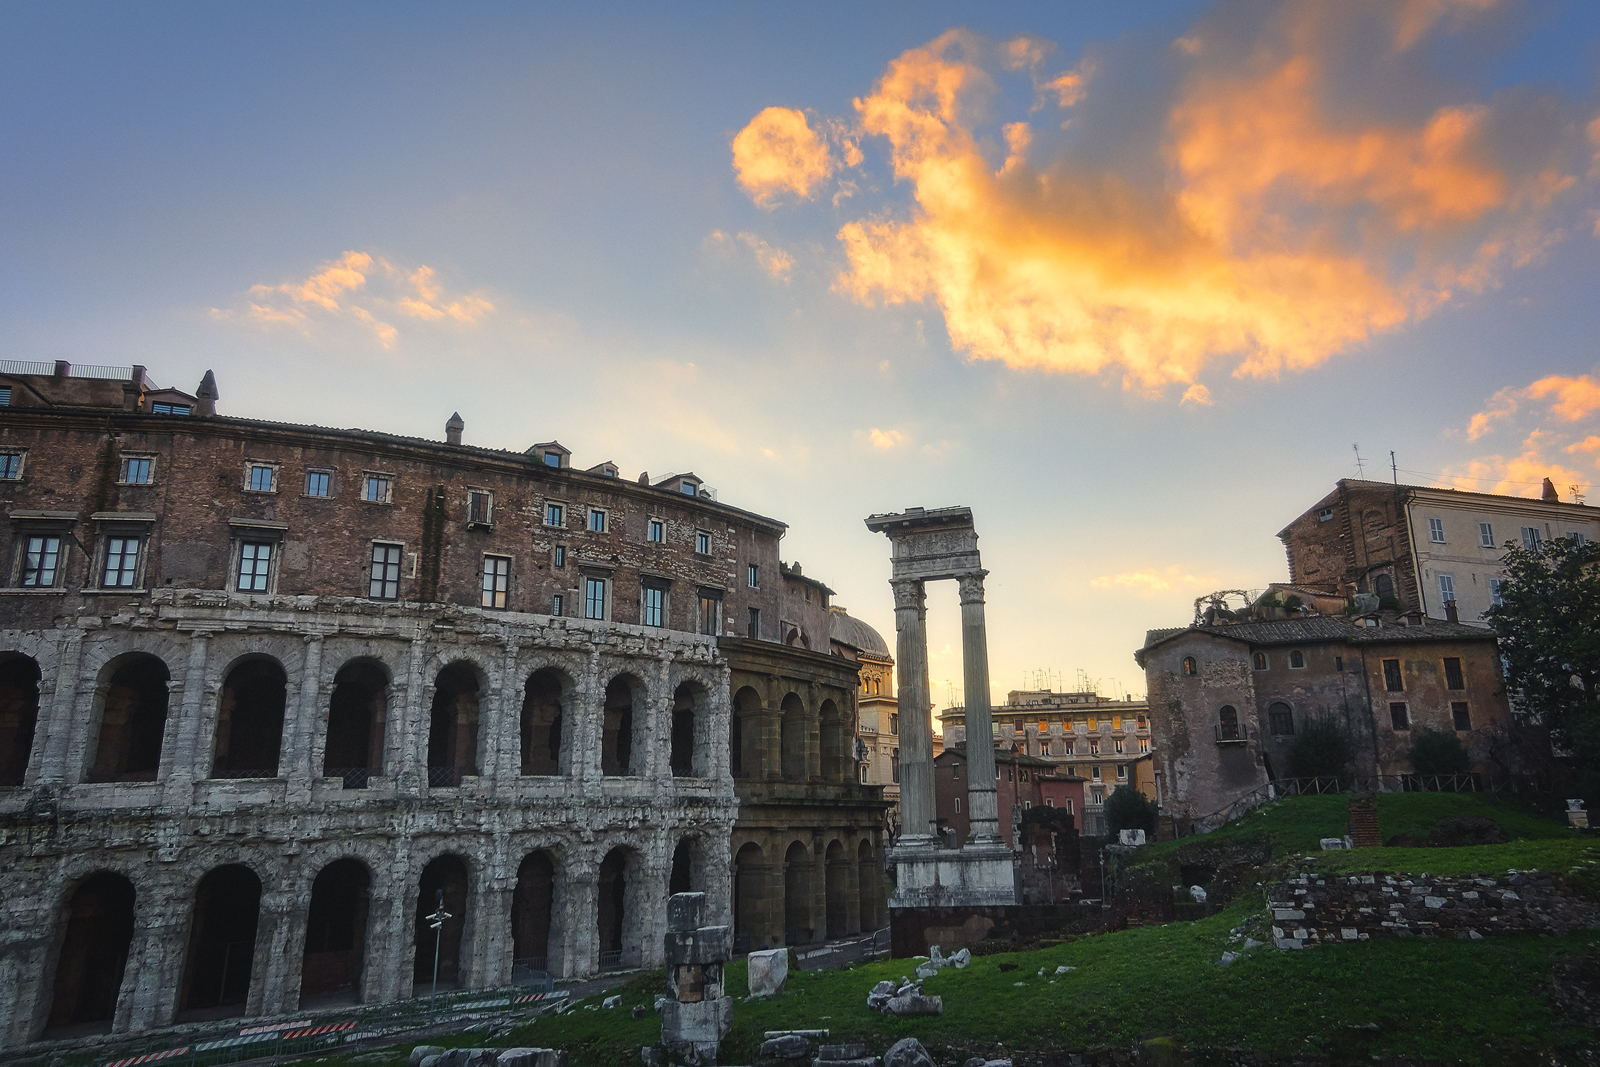 Buildings and Ruins in Rome Italy